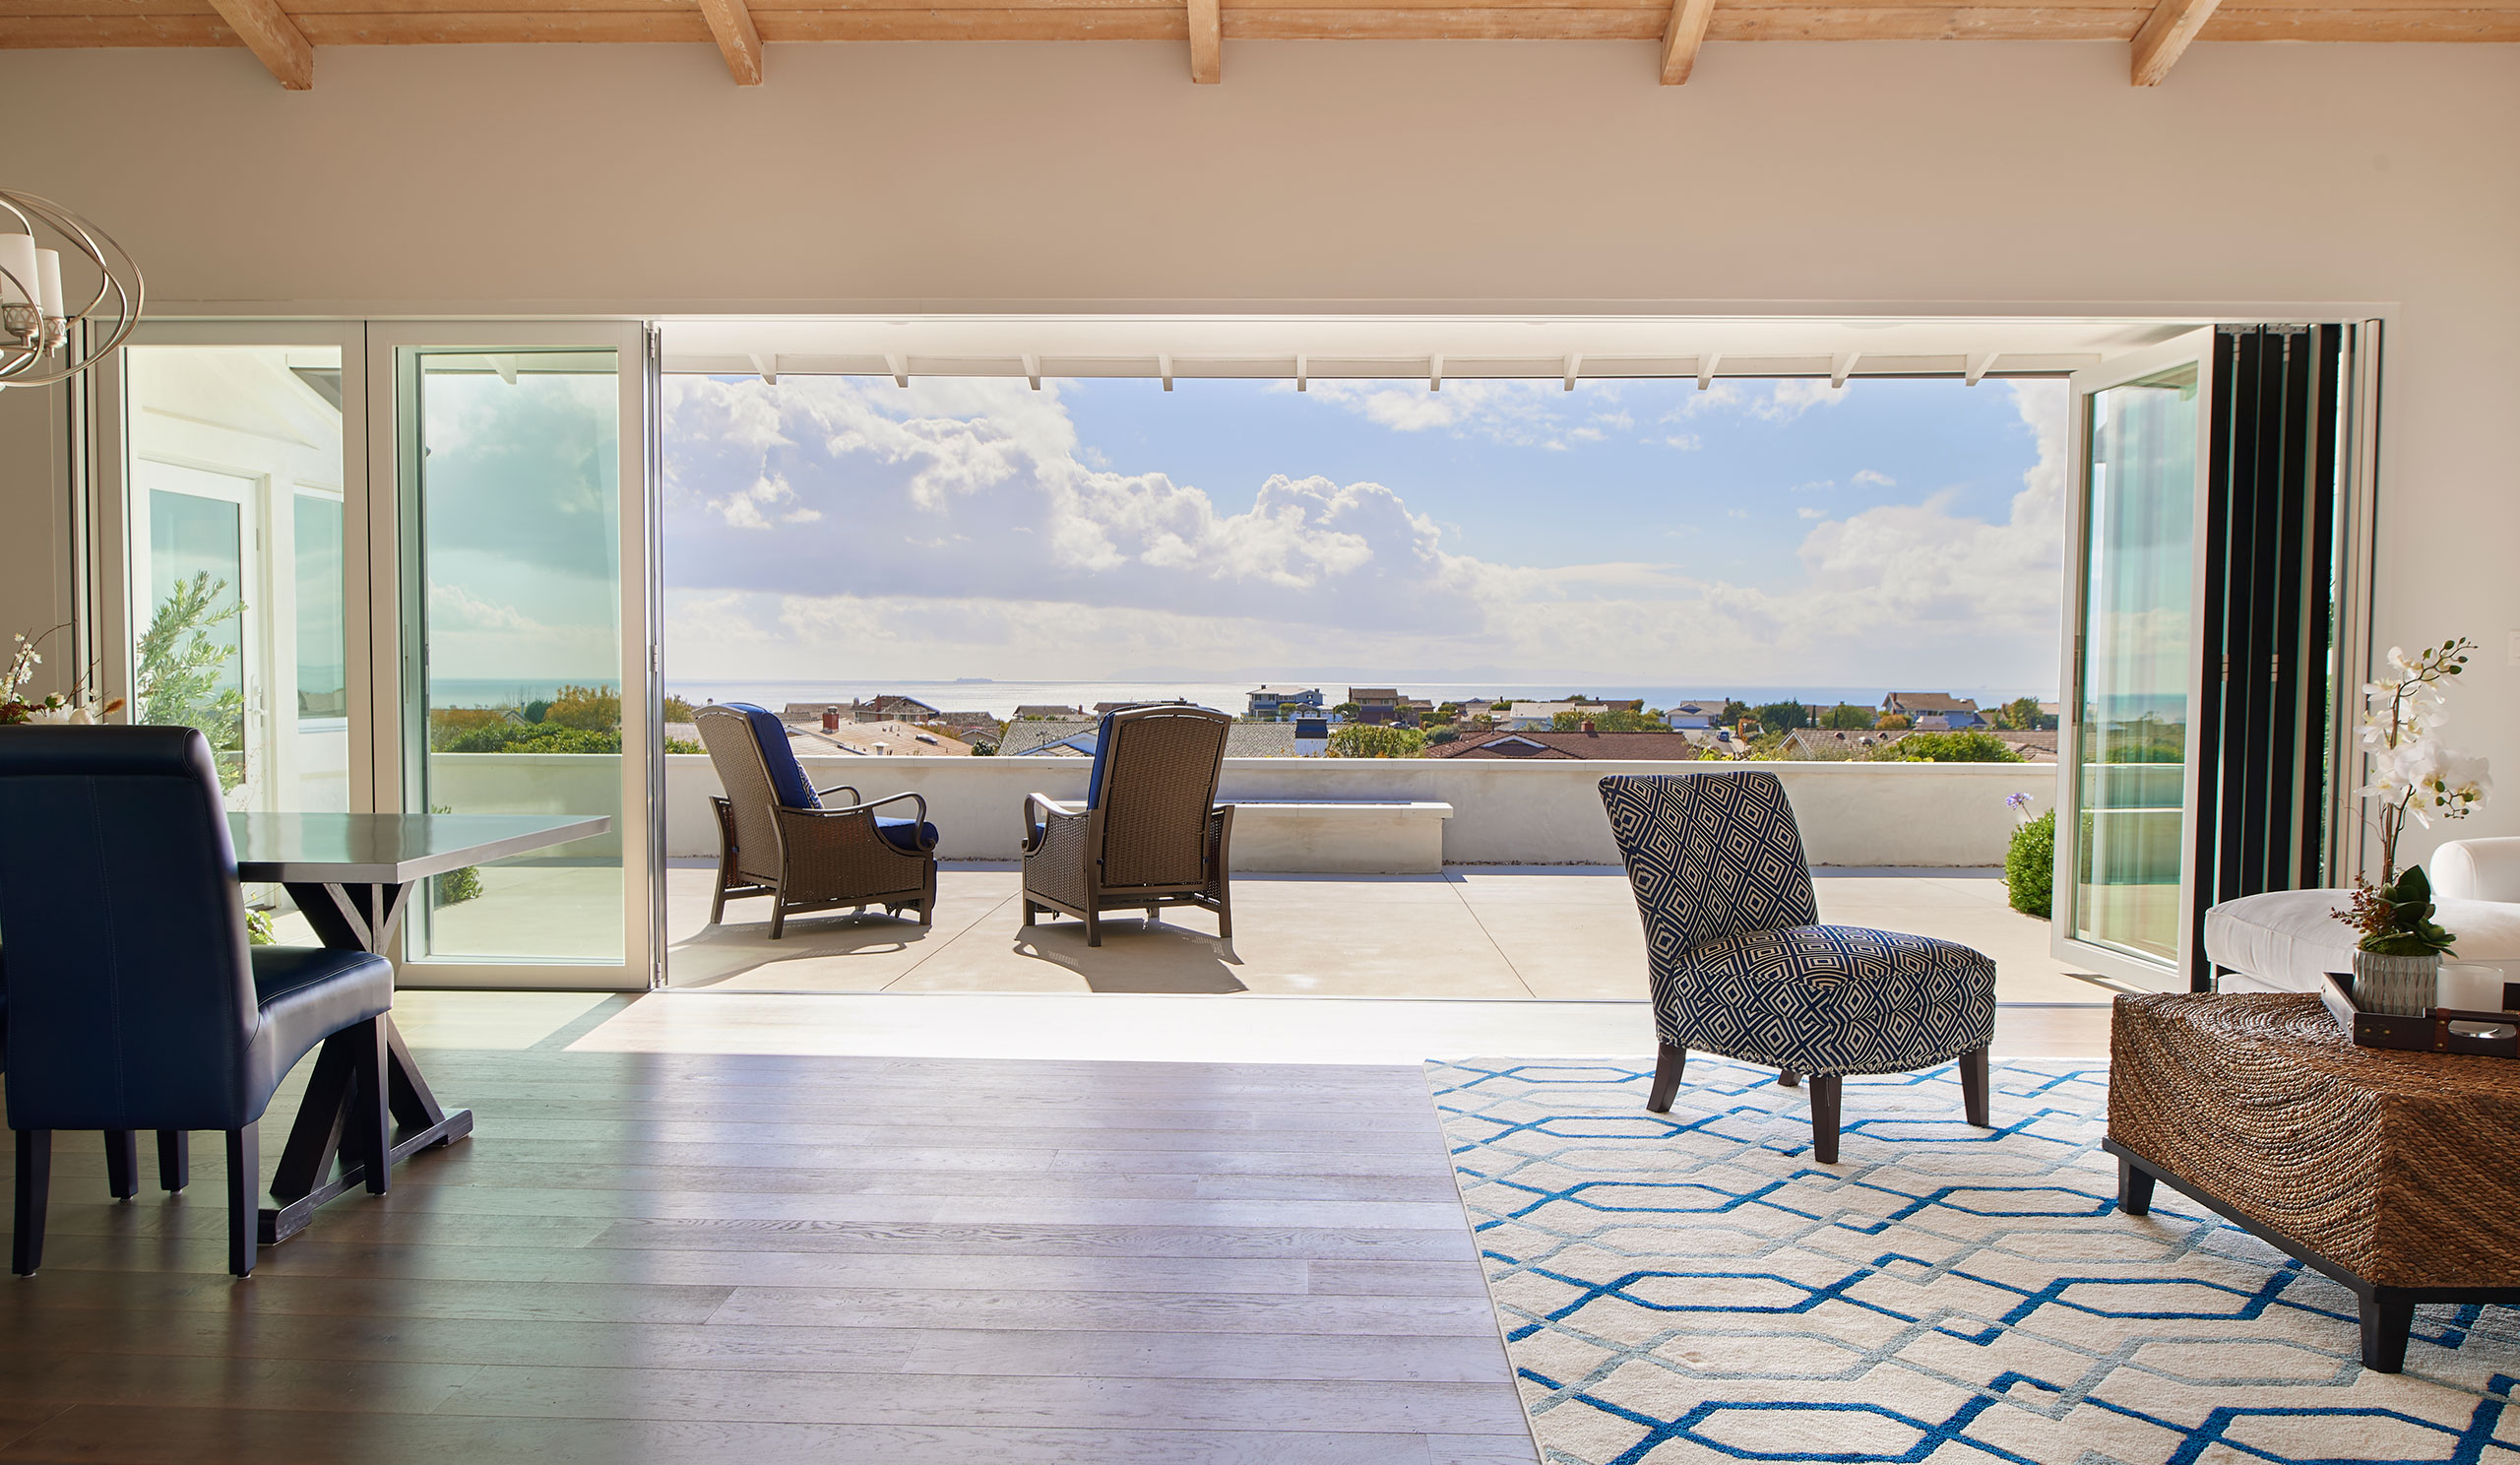 Folding glass doors open easily to add space and bring fresh air in by The Folding Door Store.